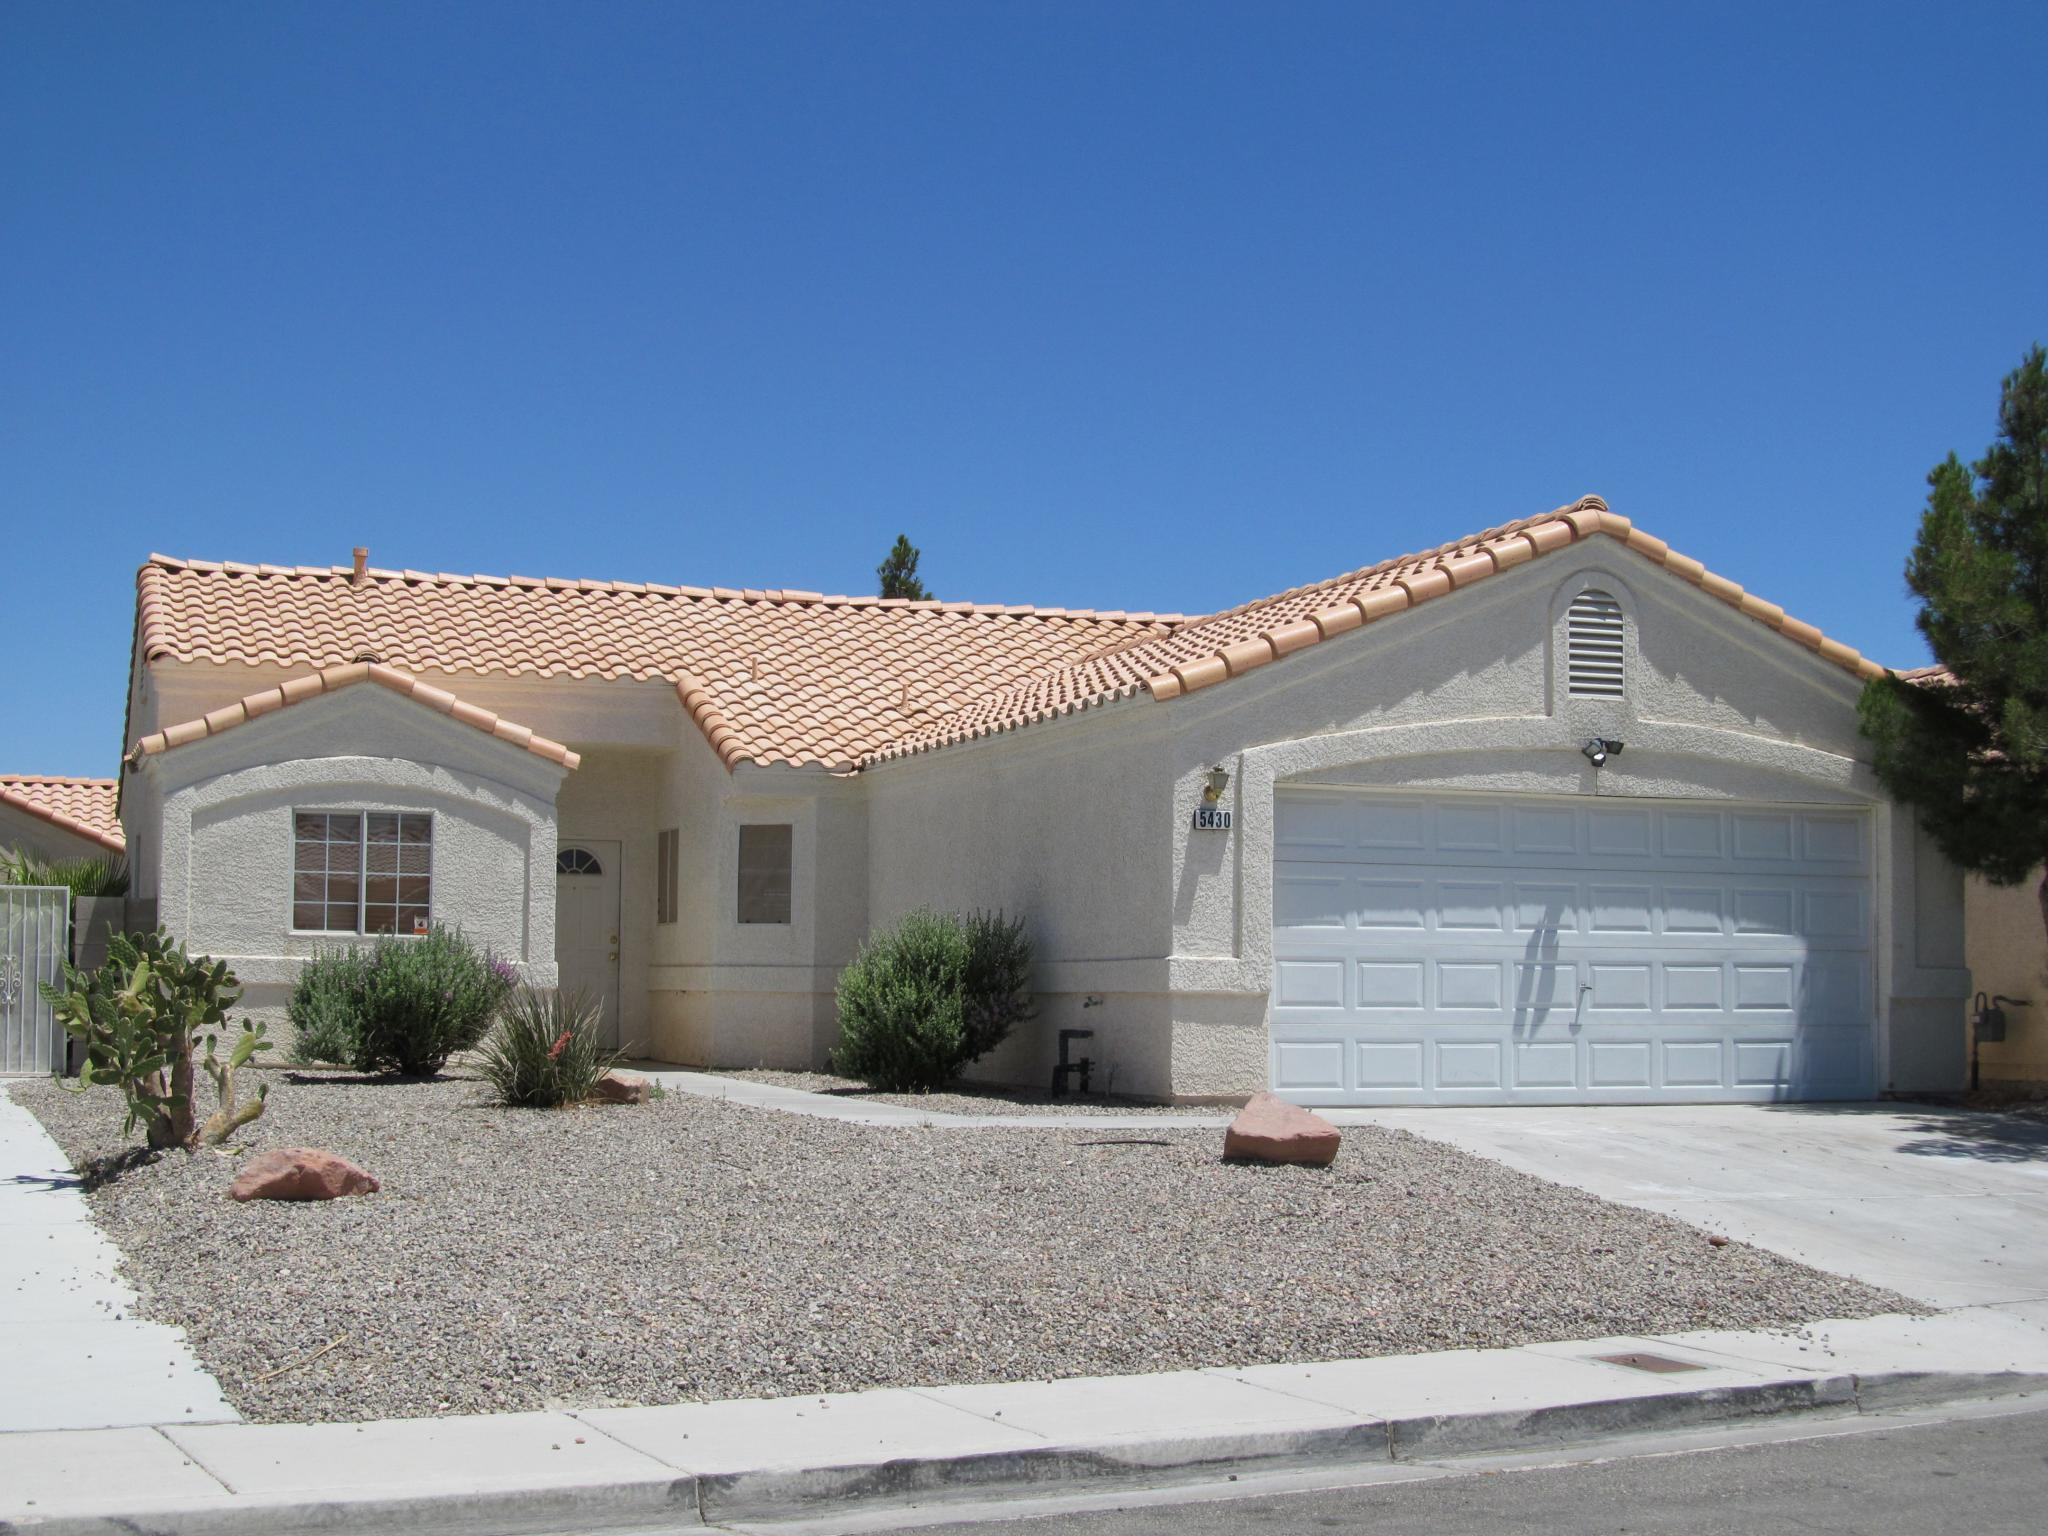 5430 Sharp Tooth Way, North Las Vegas, NV 89031 - 3 Bed, 2 Bath